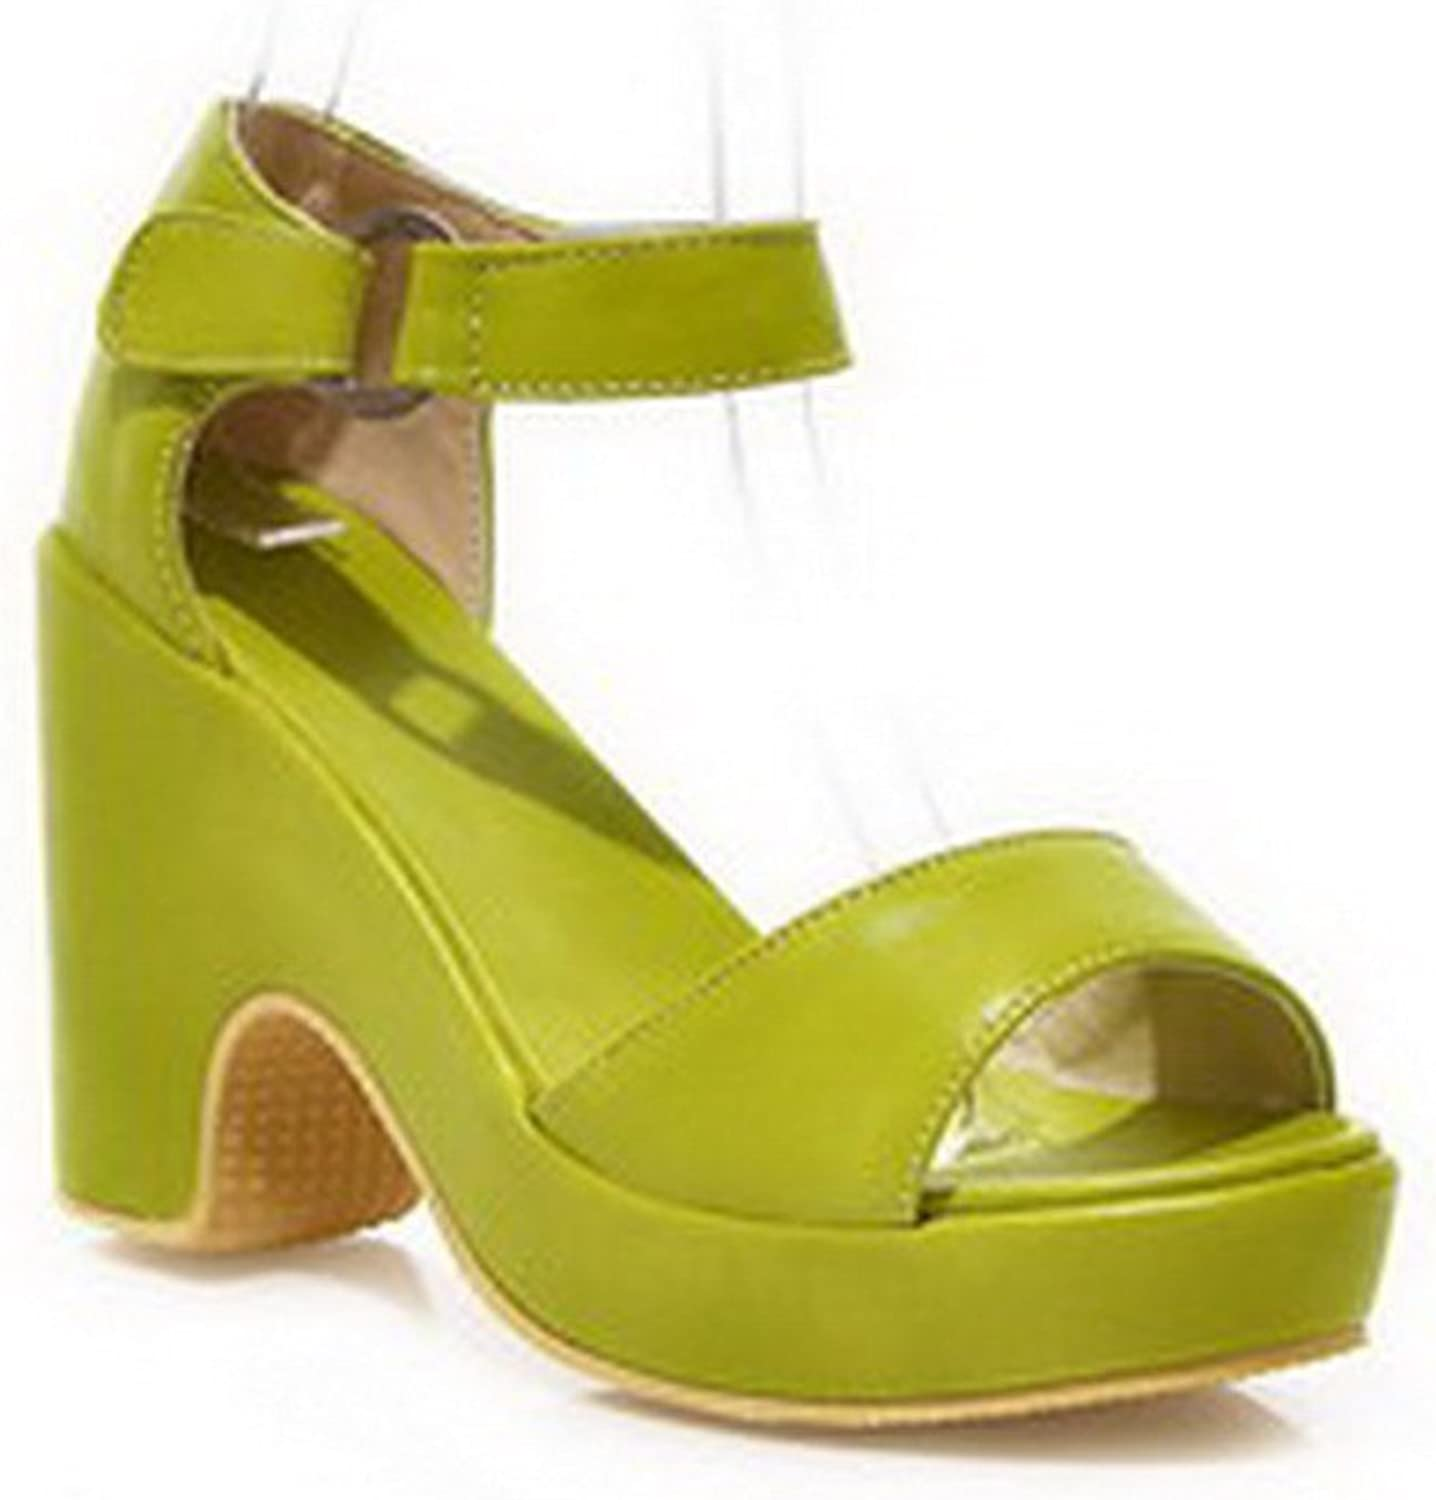 WeiPoot Women's Open Toe High Heel Soft Material Solid Sandals with Buckle, Green, 7.5 B(M) US